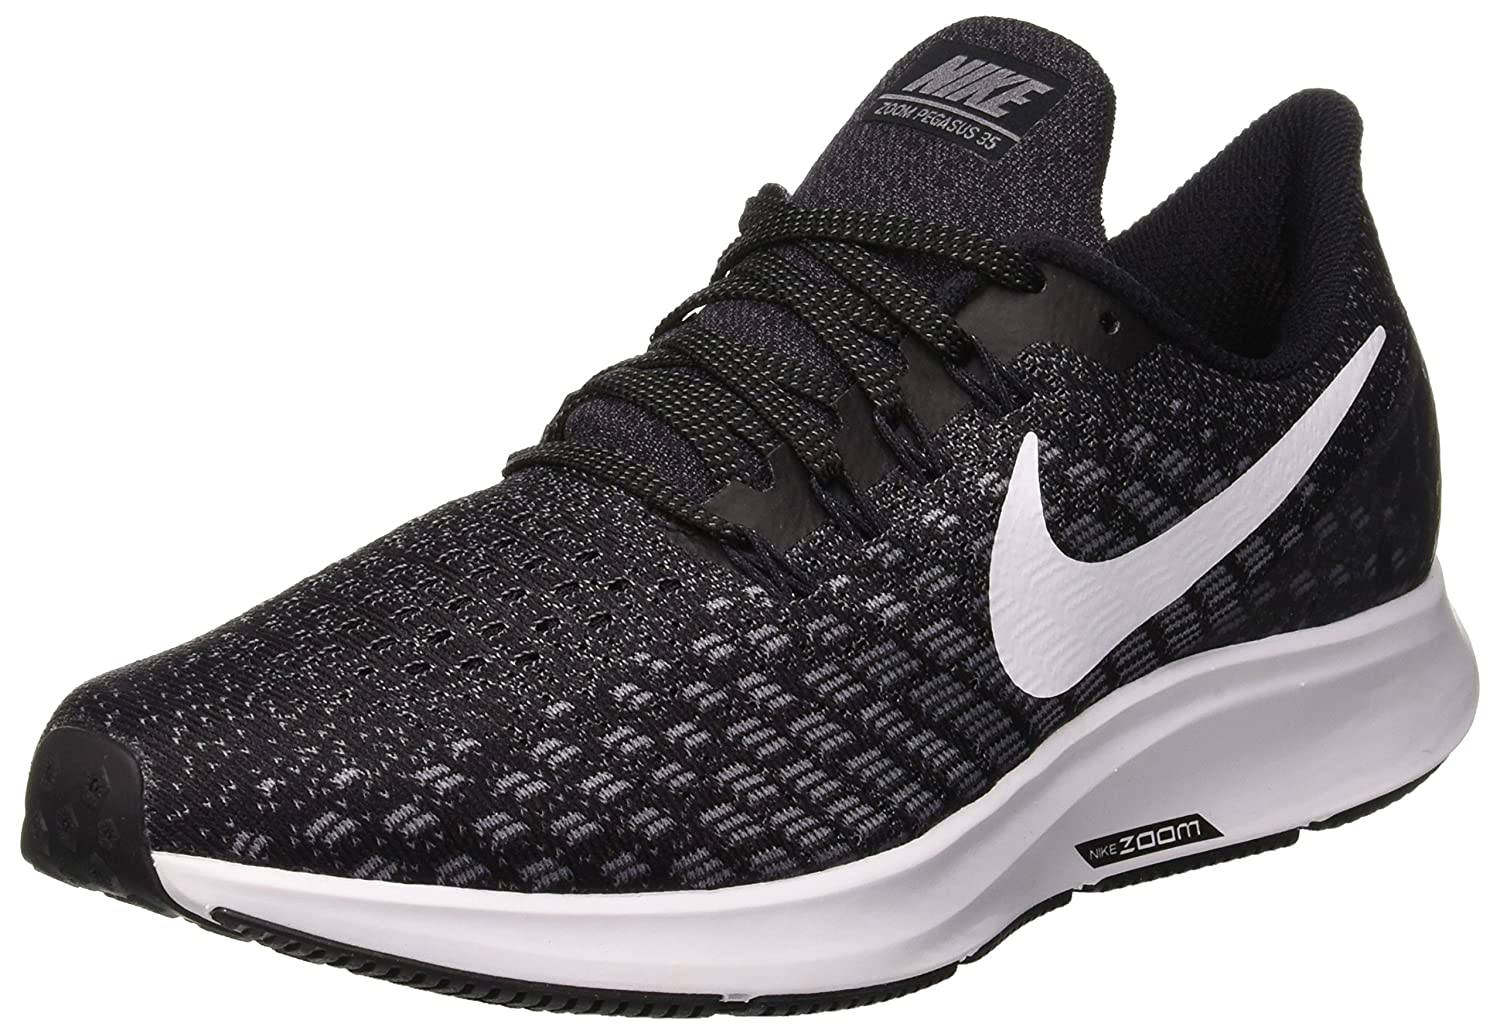 TALLA 41 EU. Nike Free Run 2, Zapatillas de Running Unisex Adulto